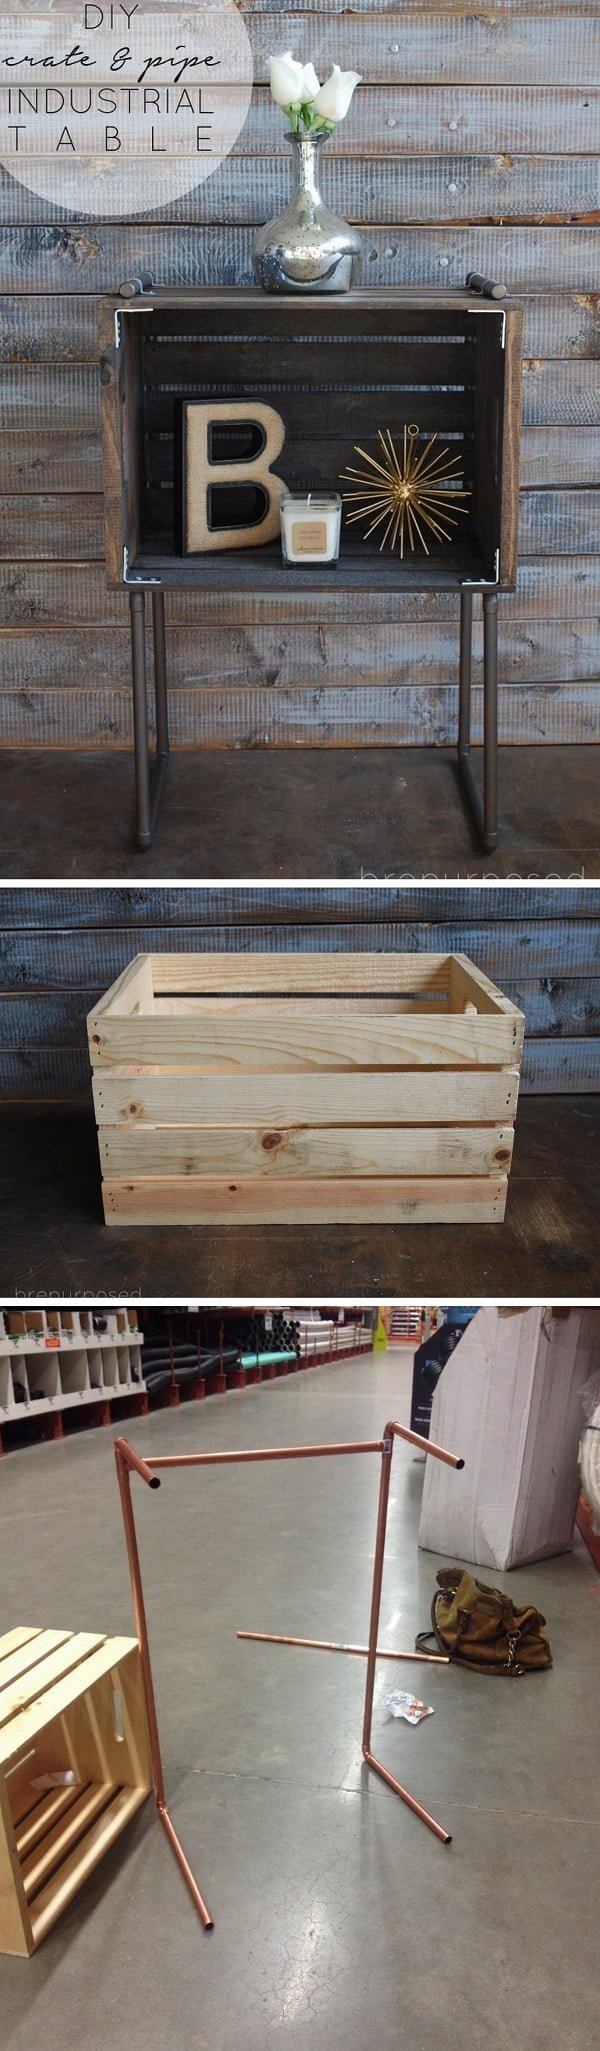 15 Brilliant DIY Crafts You Can Make with Wood Crates - Check out how to build a DIY industrial table from crates and pipe